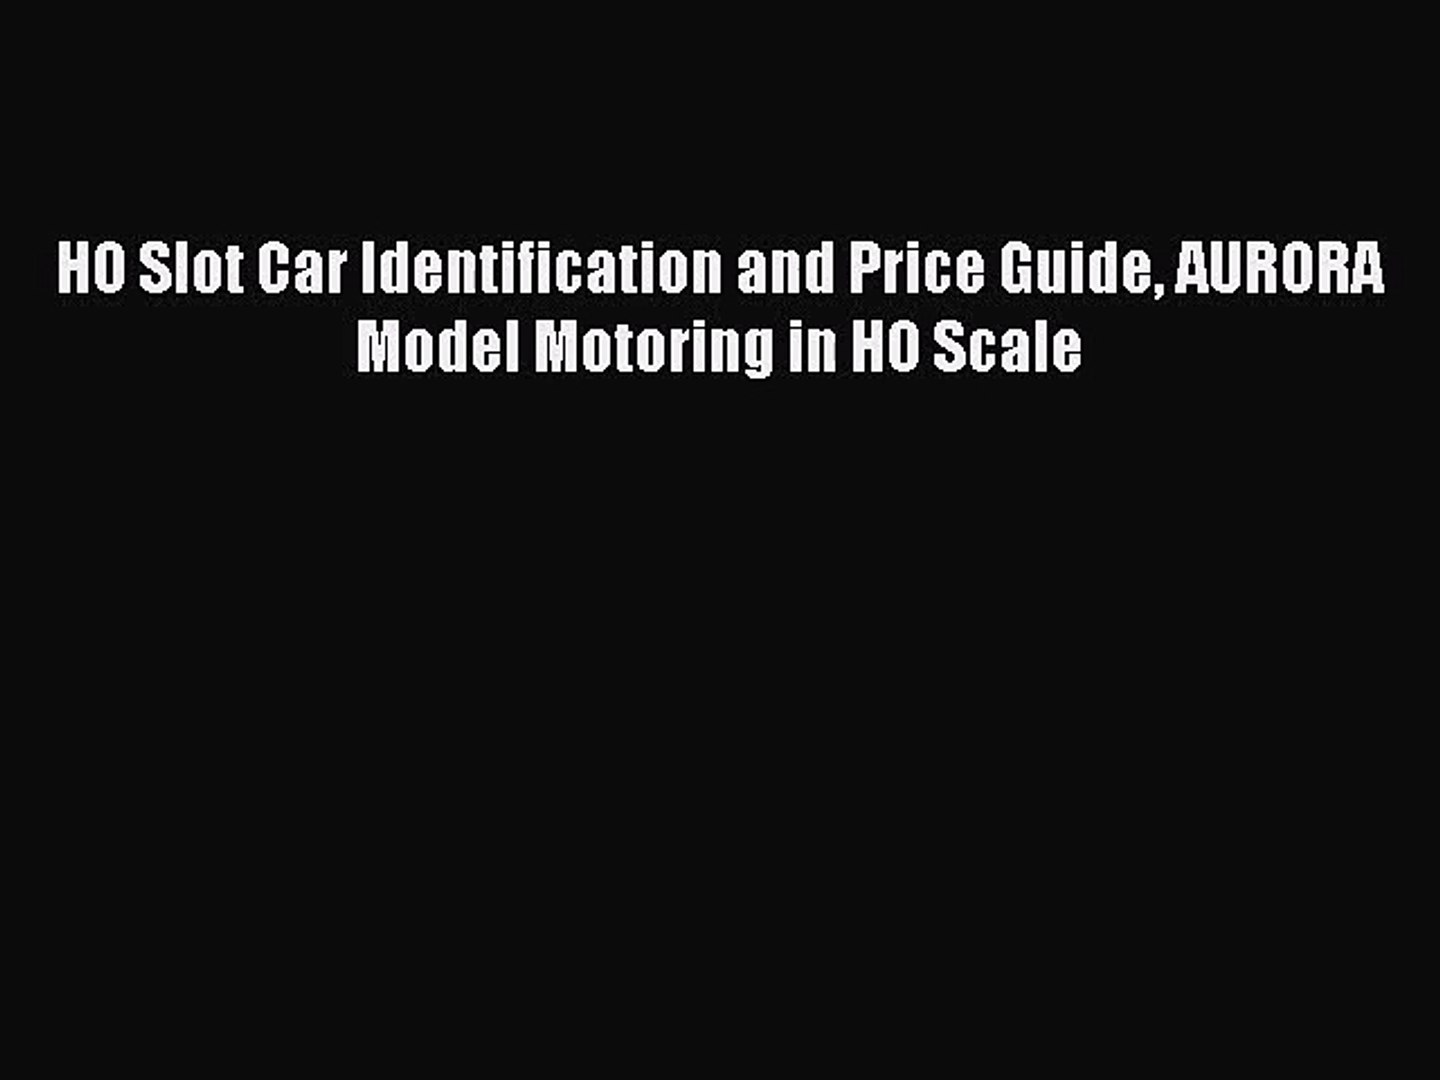 [PDF Download] HO Slot Car Identification and Price Guide AURORA Model  Motoring in HO Scale